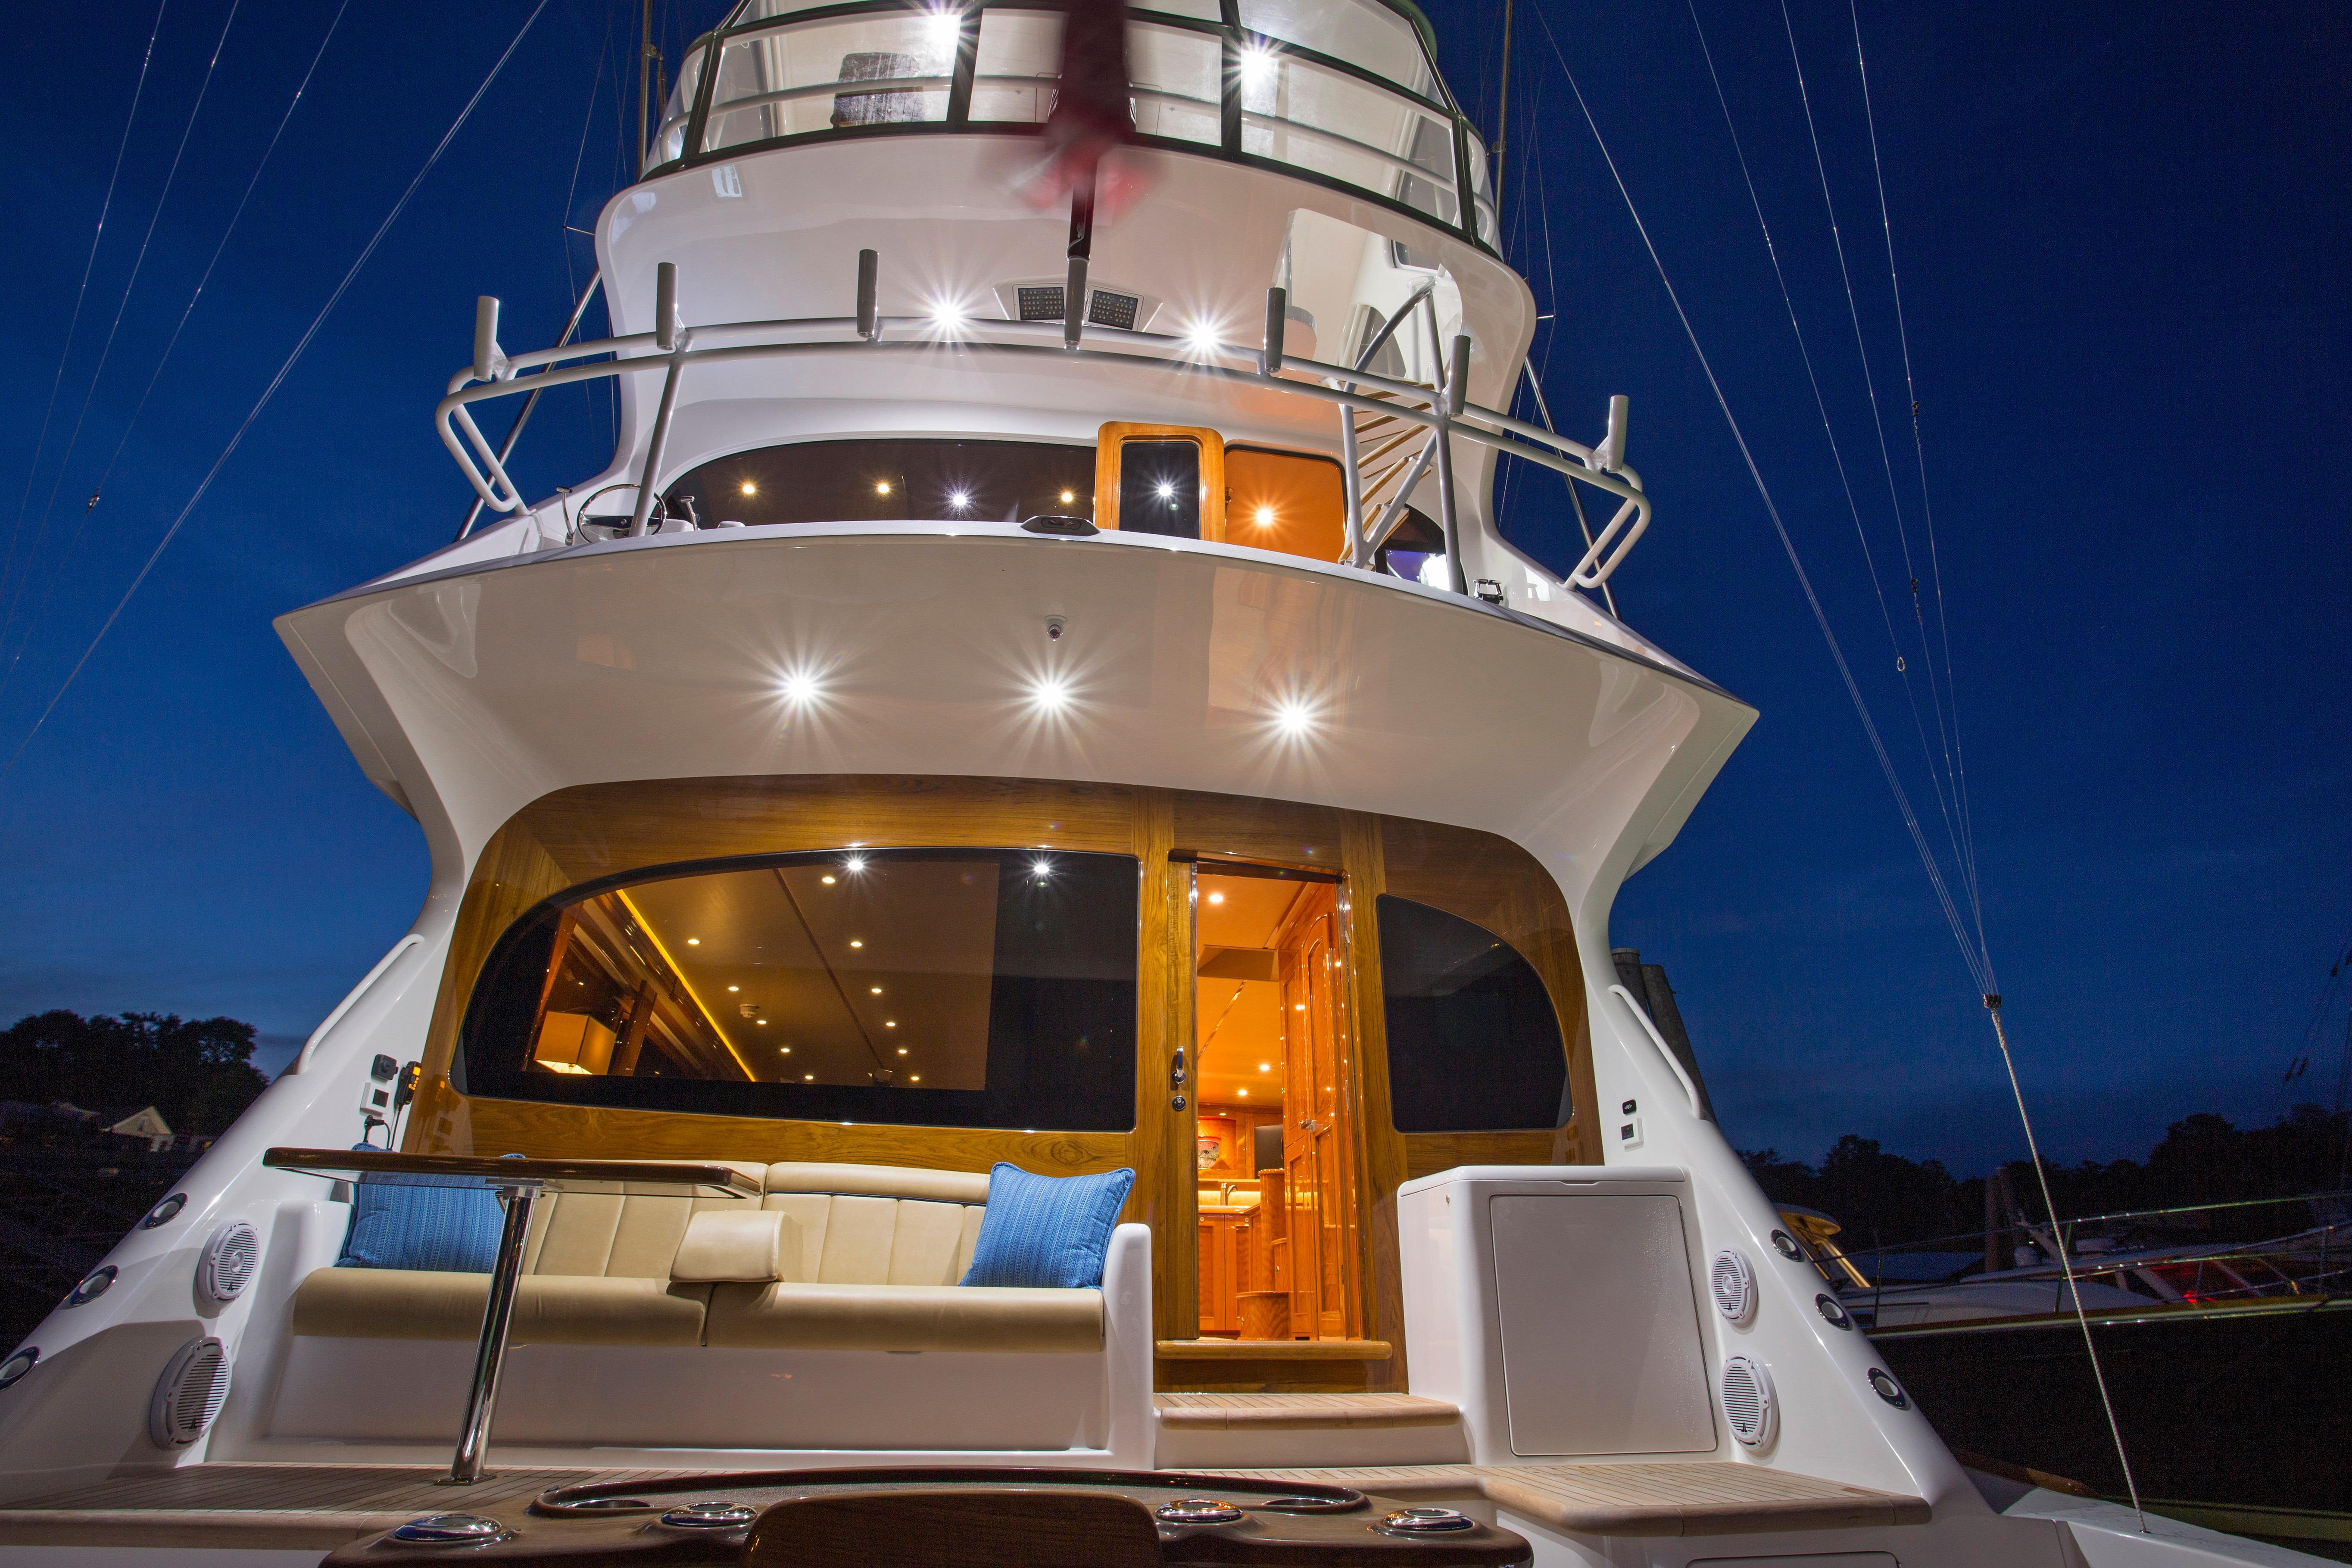 82 Viking Yacht 2016 Quot Untethered Quot For Sale In Us Denison Yacht Sales